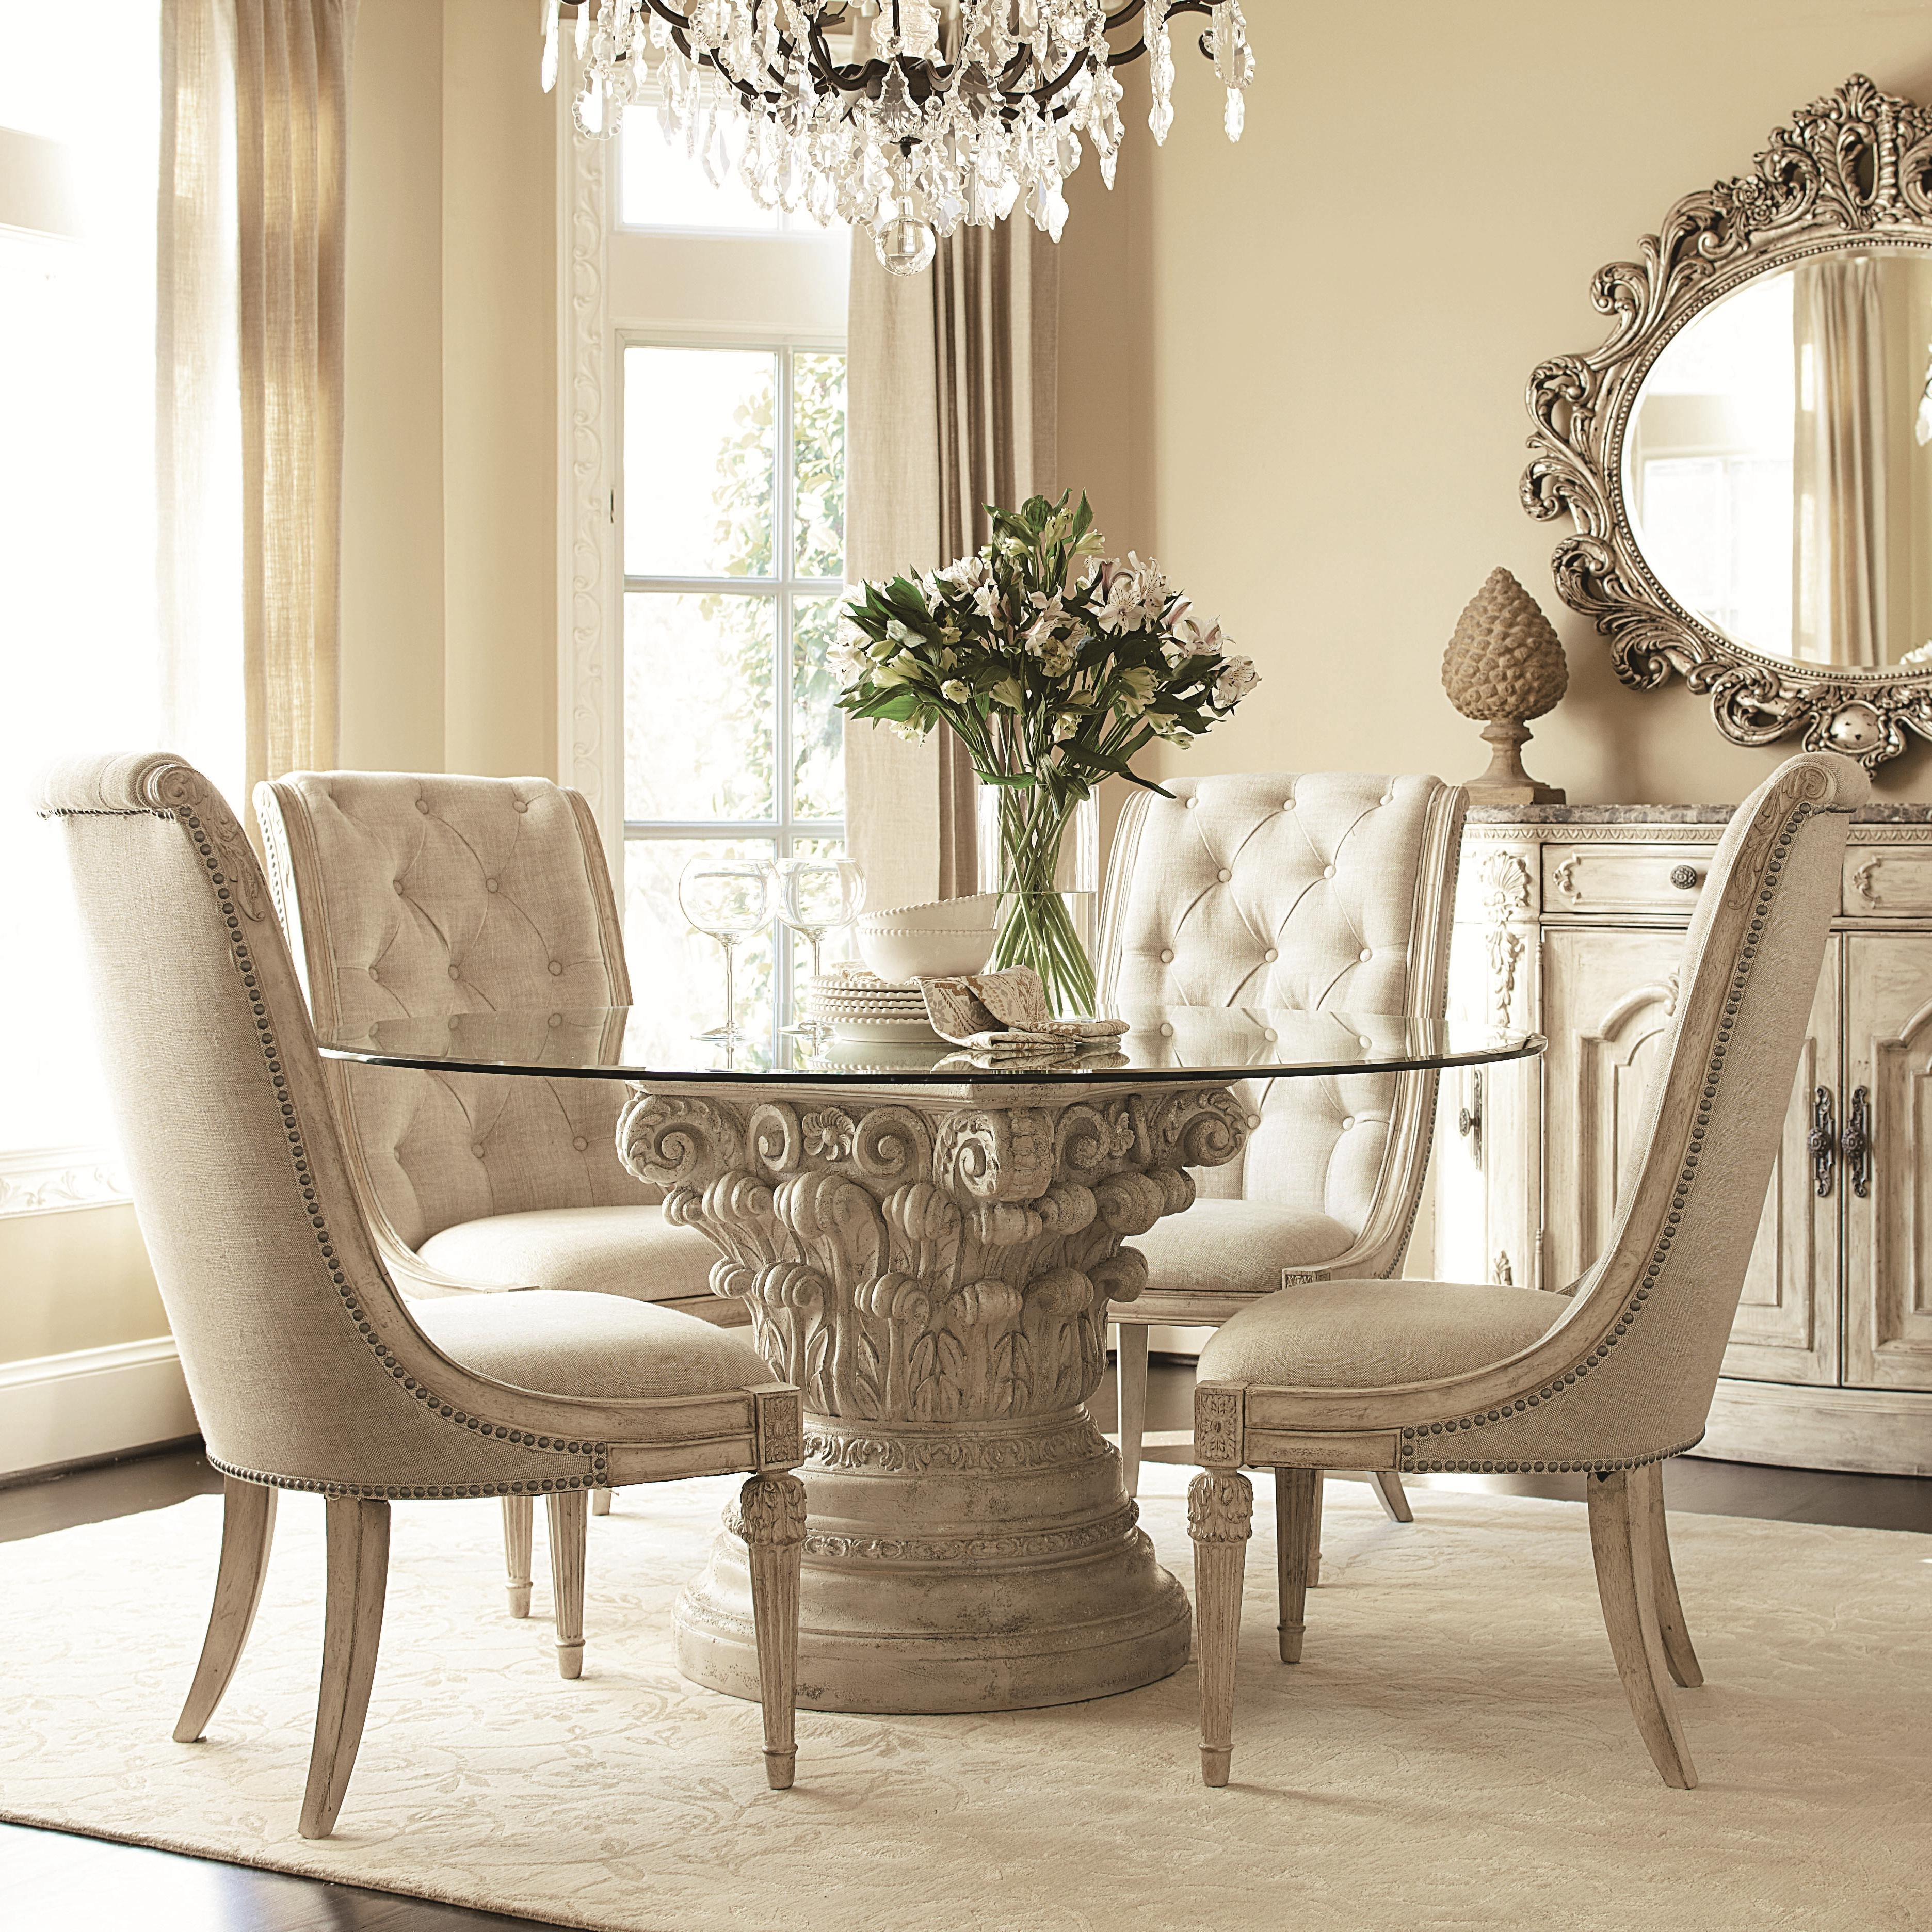 Most Current American Drew Jessica Mcclintock Home – The Boutique Collection 5 Pertaining To Caira Black 5 Piece Round Dining Sets With Diamond Back Side Chairs (View 14 of 25)